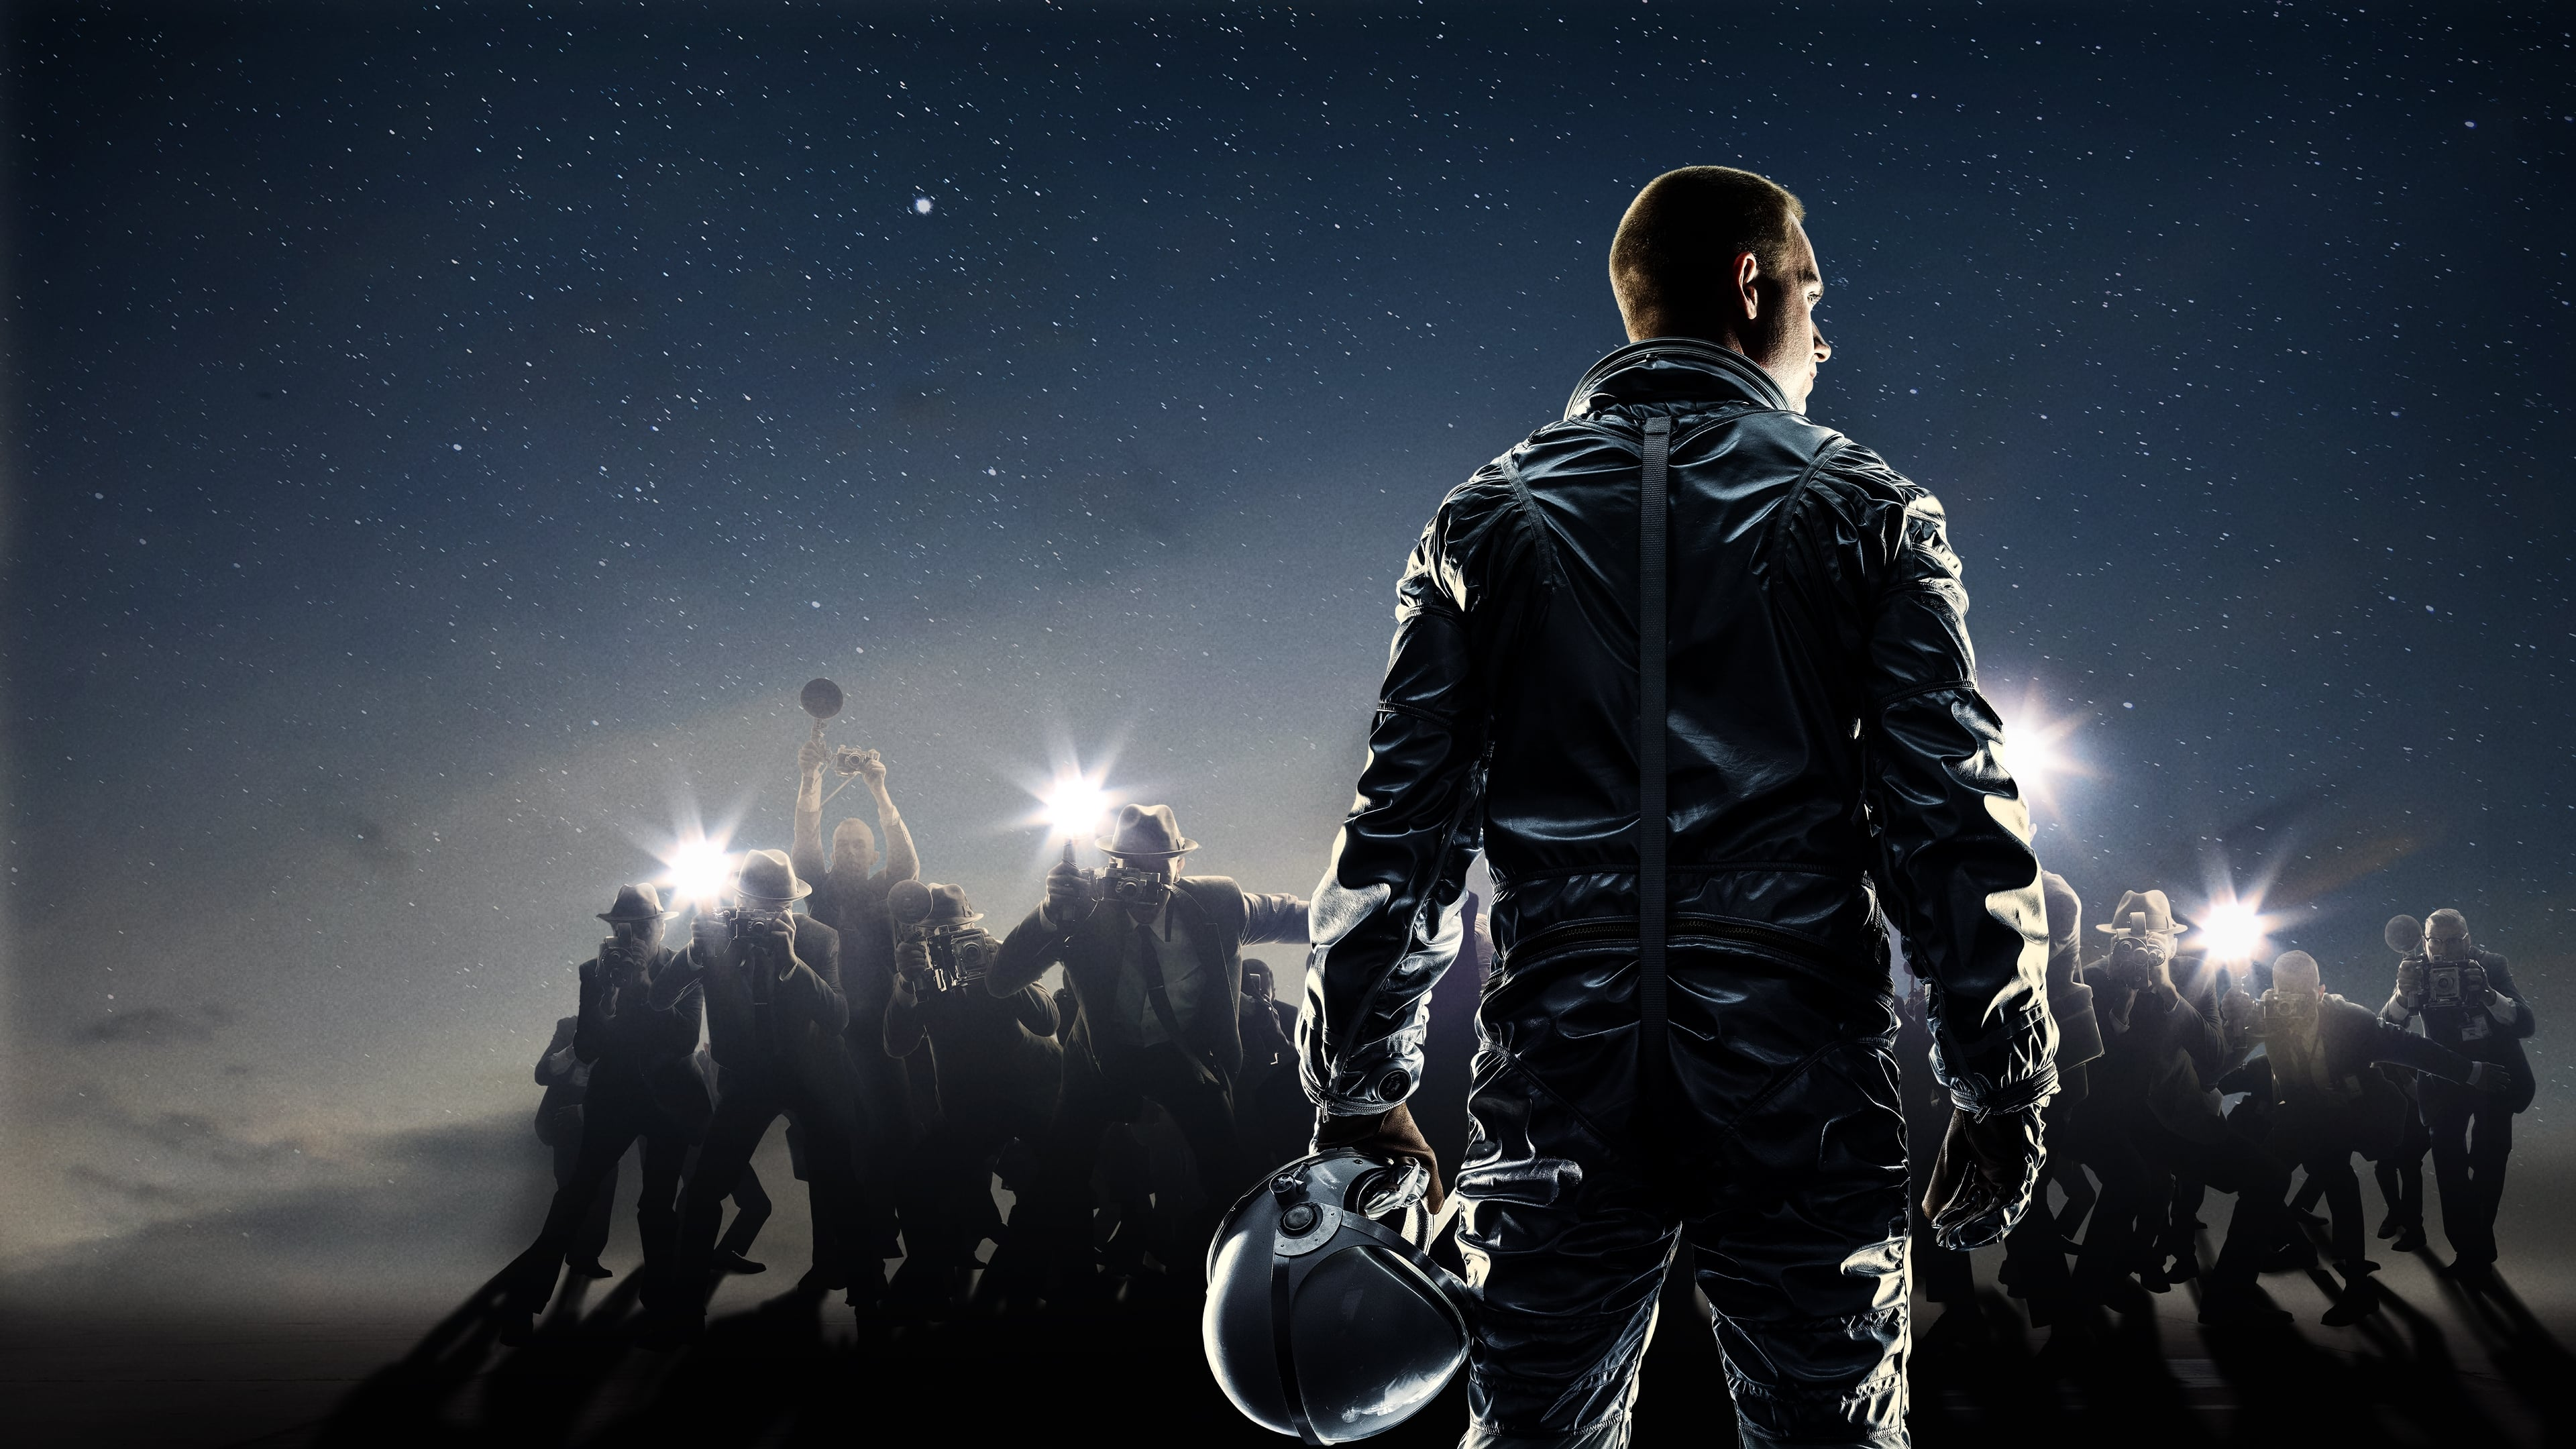 The Right Stuff to release on Disney+ next fall